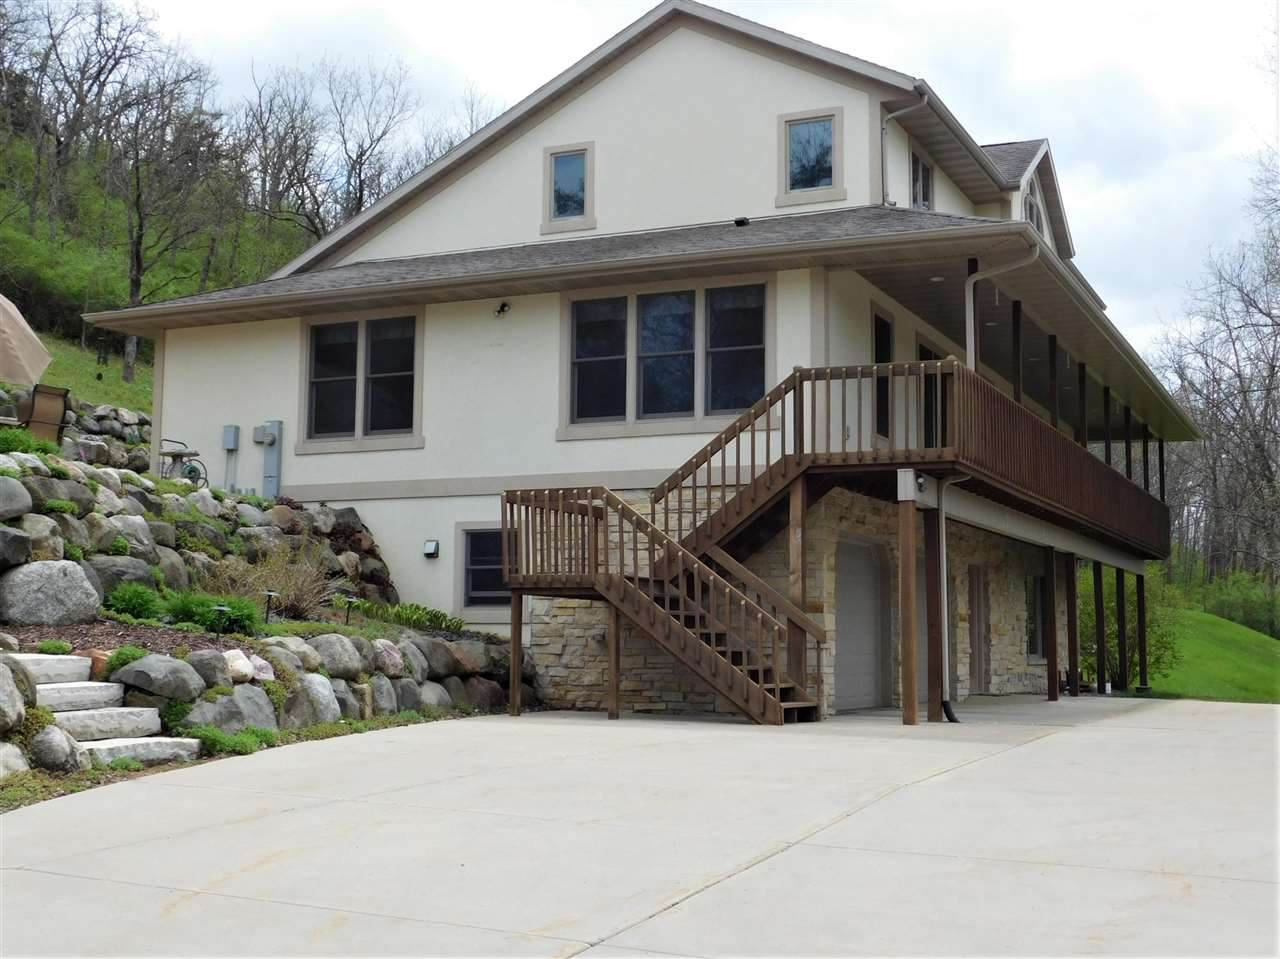 9701 Union Valley Rd - Photo 1